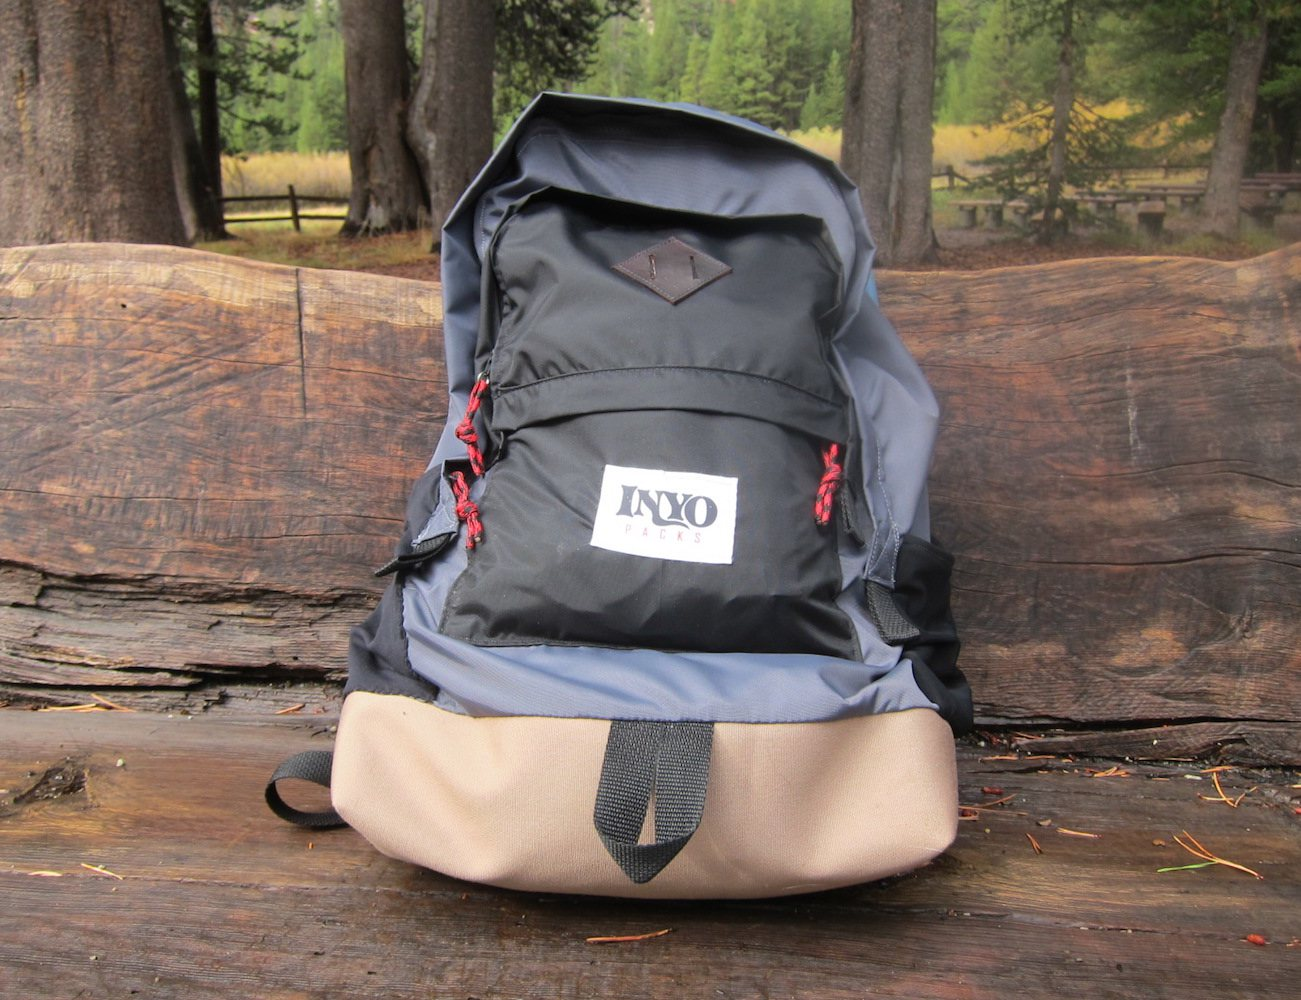 Inyo Pack